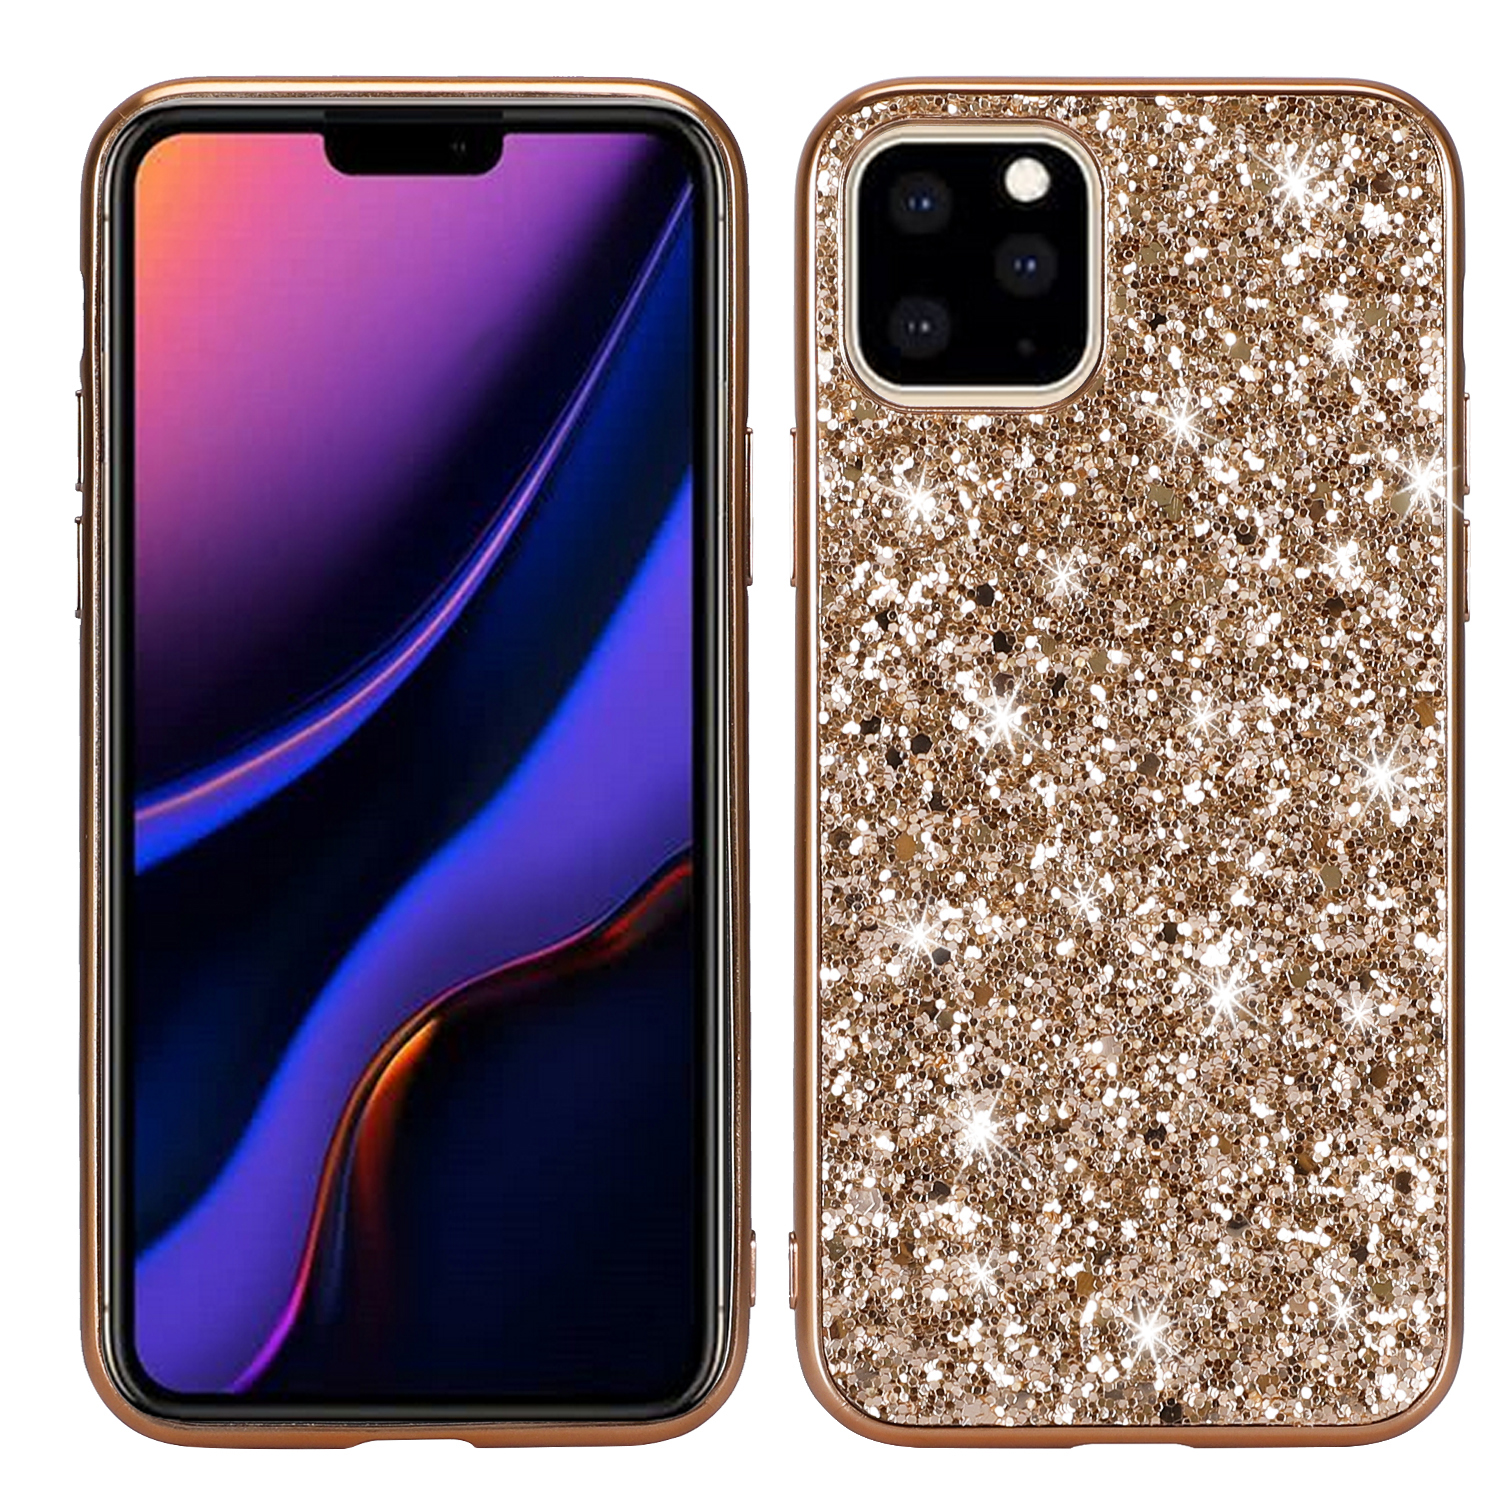 Shiny Glitter Girls Case for iPhone 11/11 Pro/11 Pro Max 23